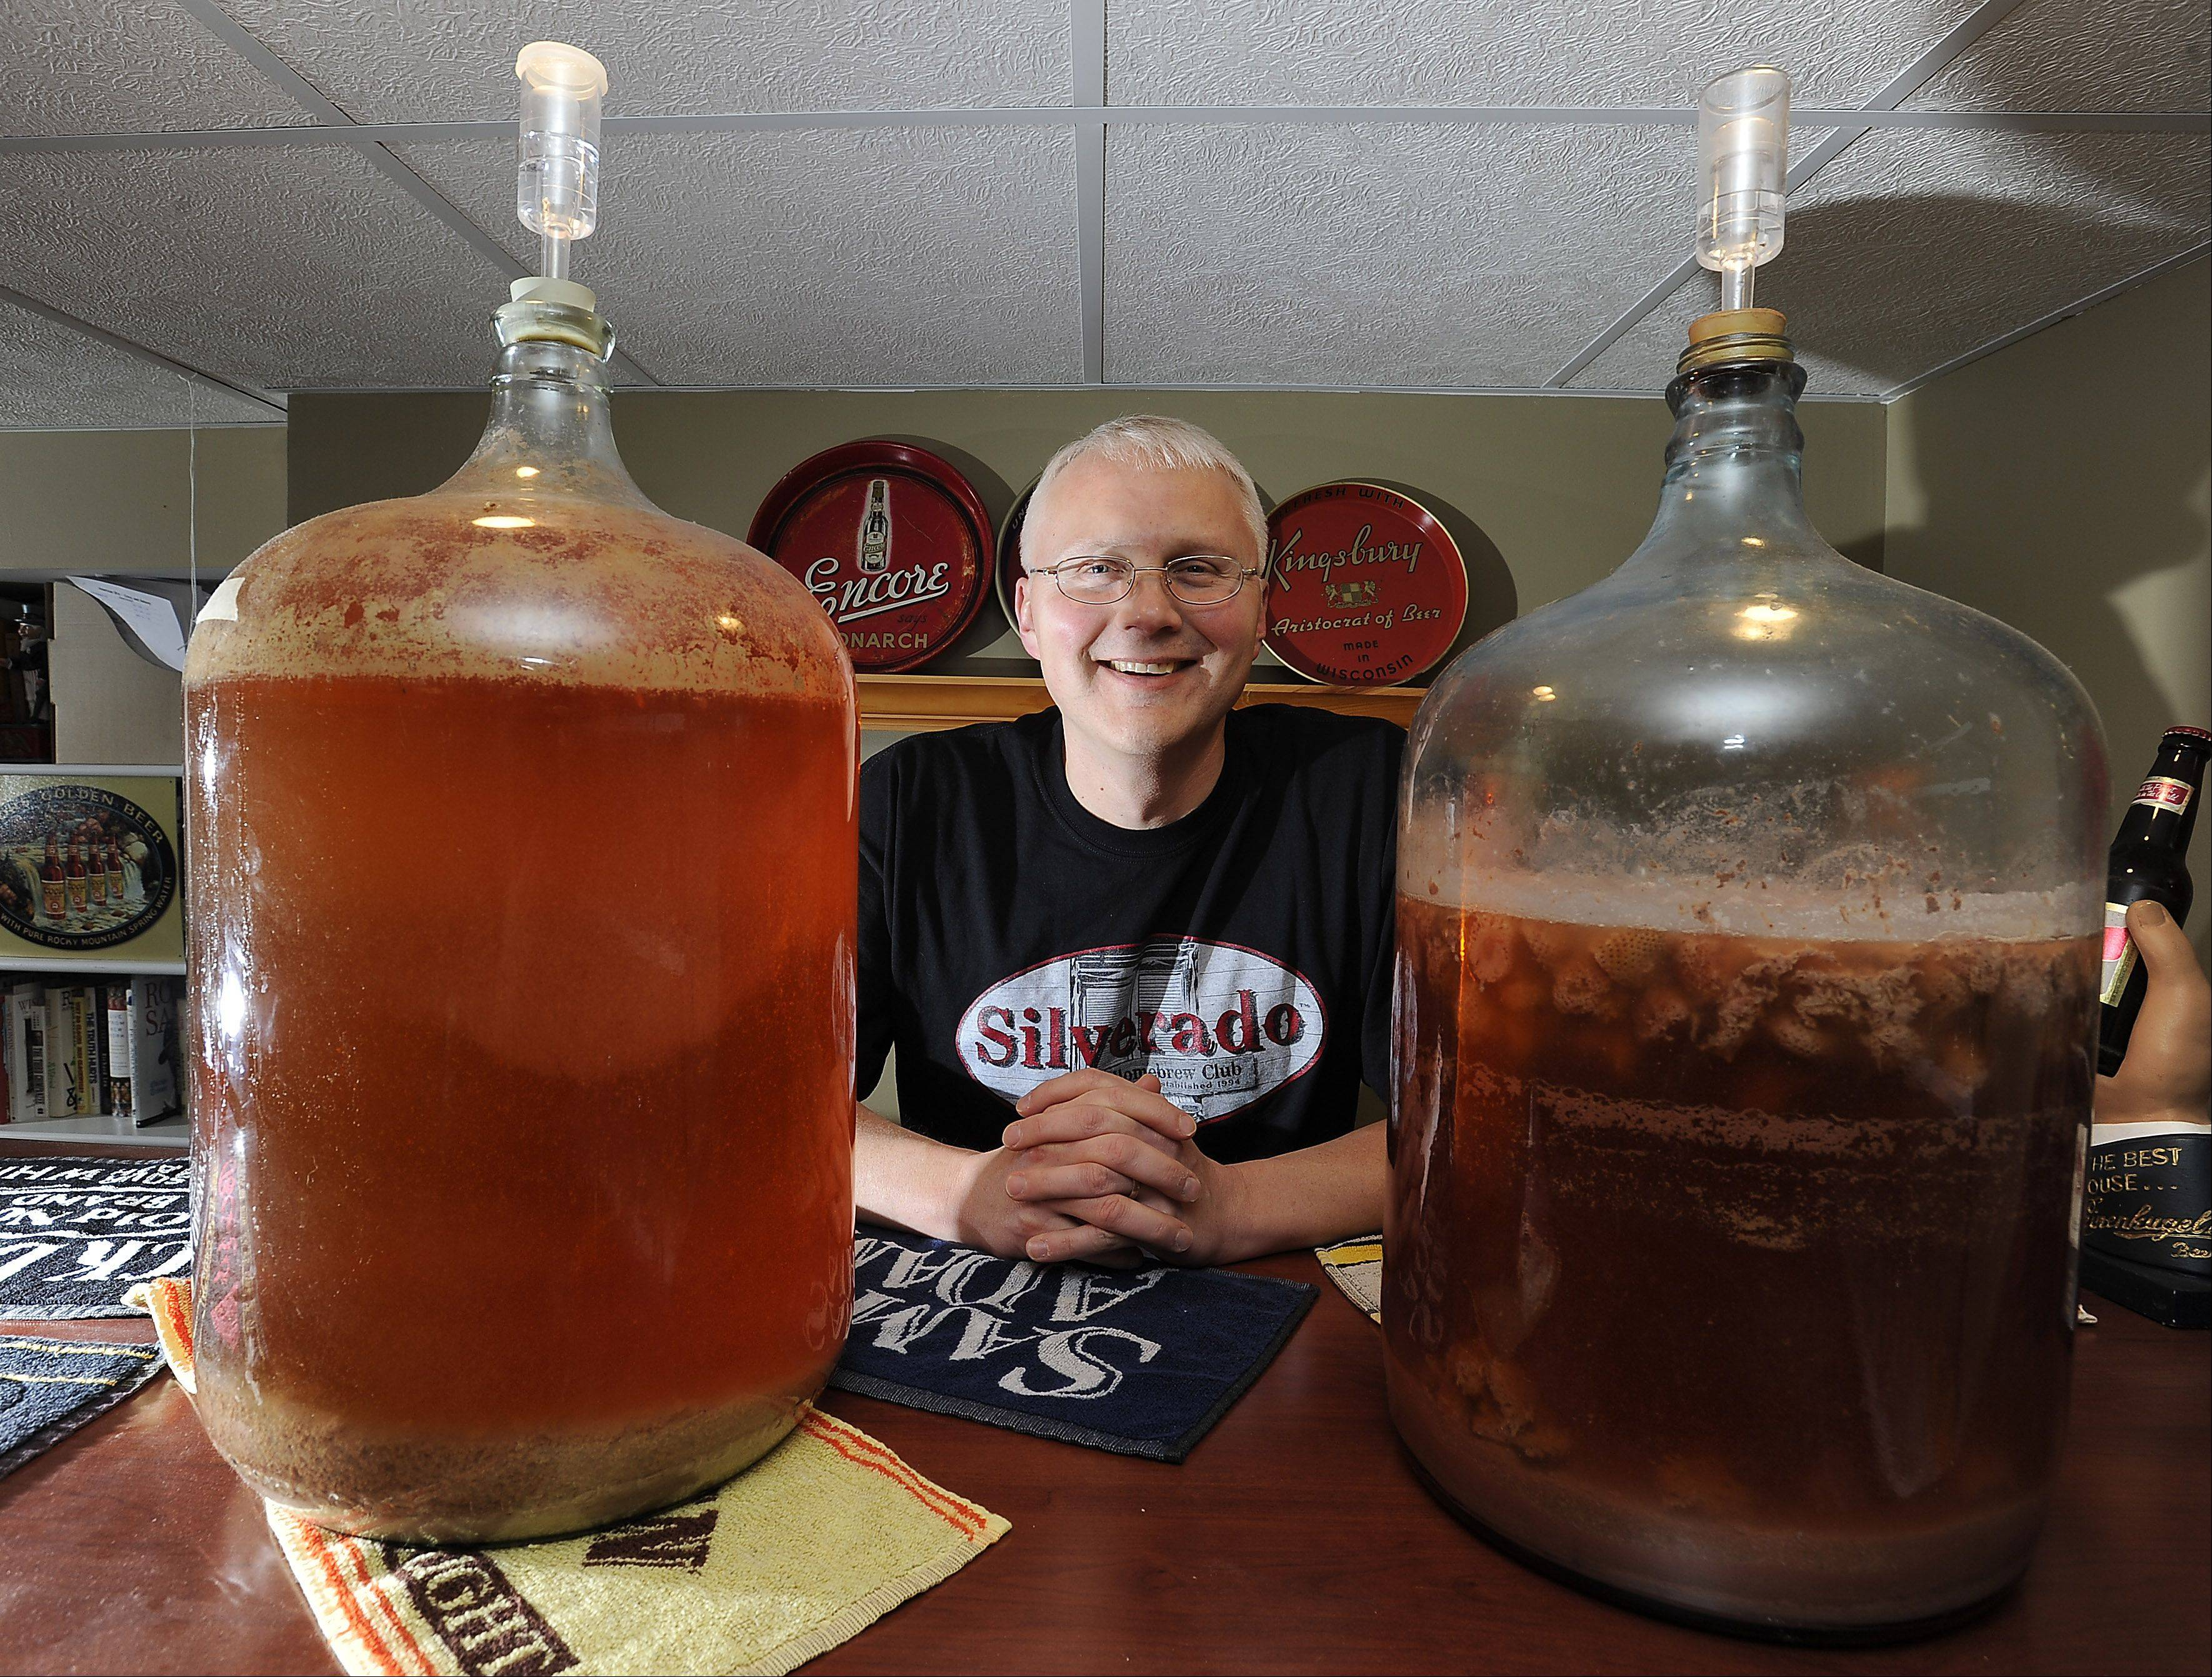 Rich Placko brewed strawberry beer in his home in Elgin. He wanted to serve it at a Elgin fundraiser but discovered it might be illegal.